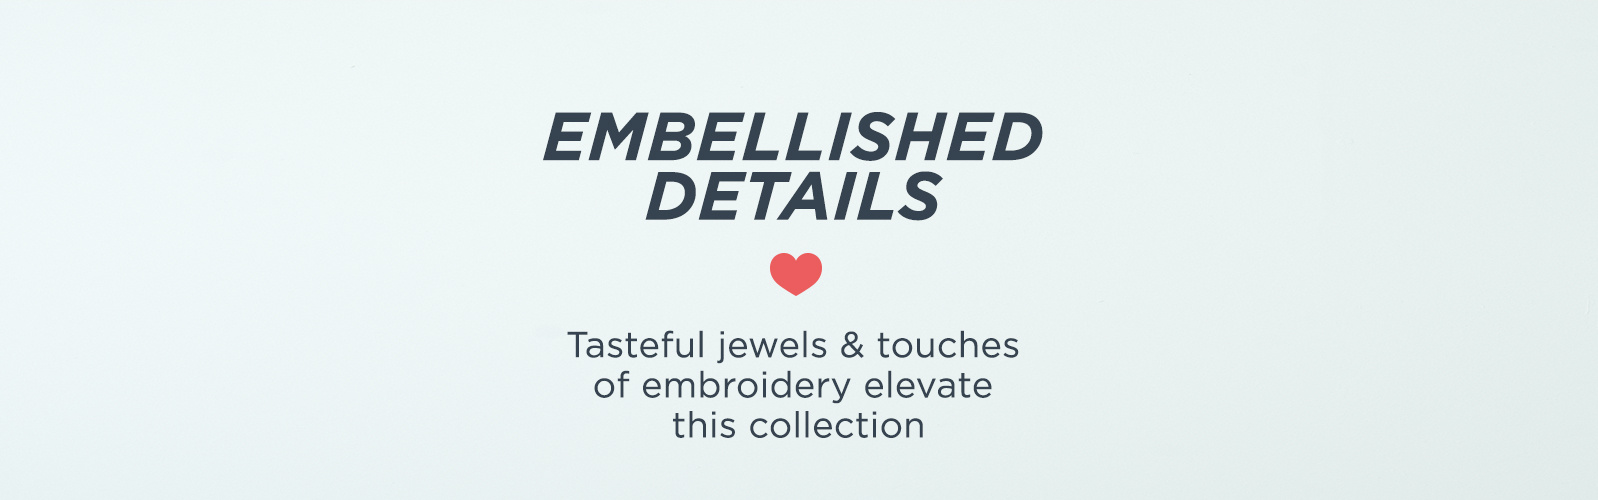 Embellished Details — Tasteful jewels & touches of embroidery elevate this collection